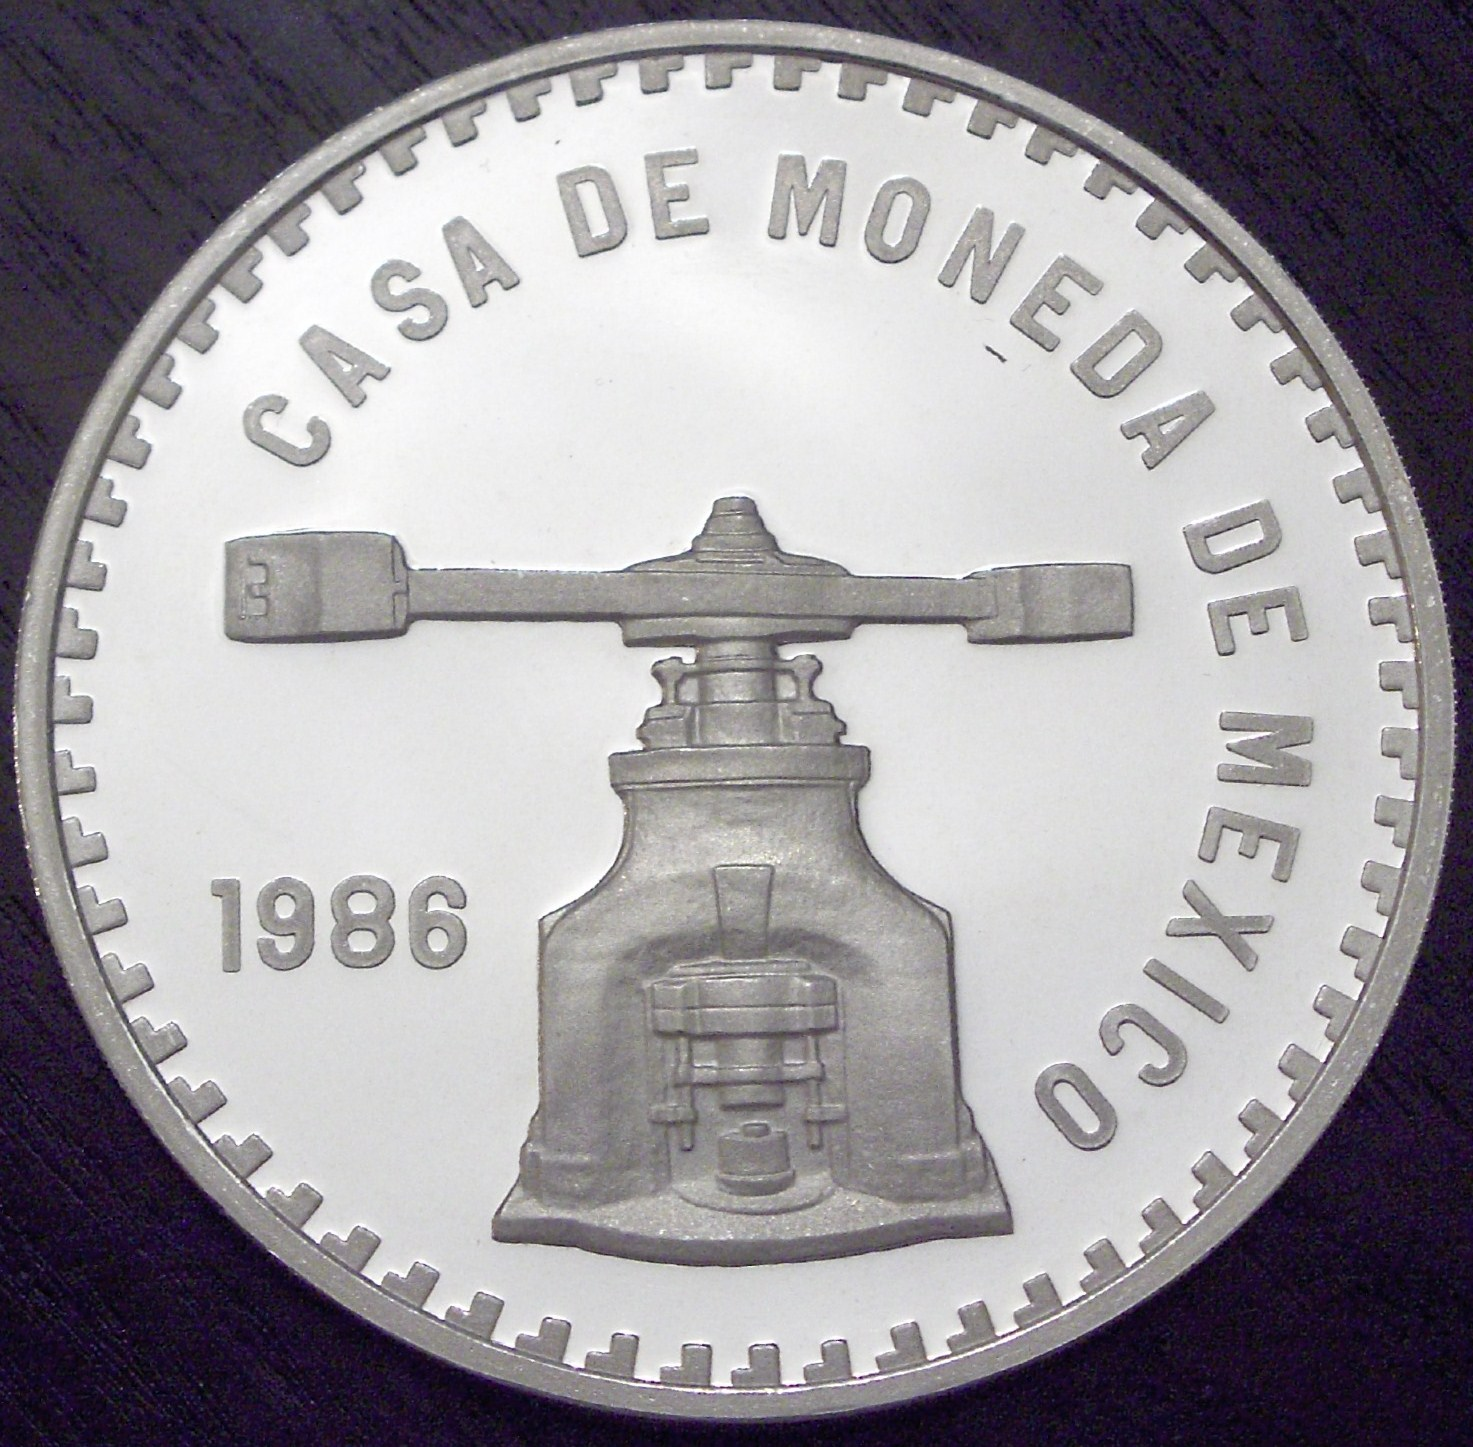 Mexico 1986 5 Onza Press front